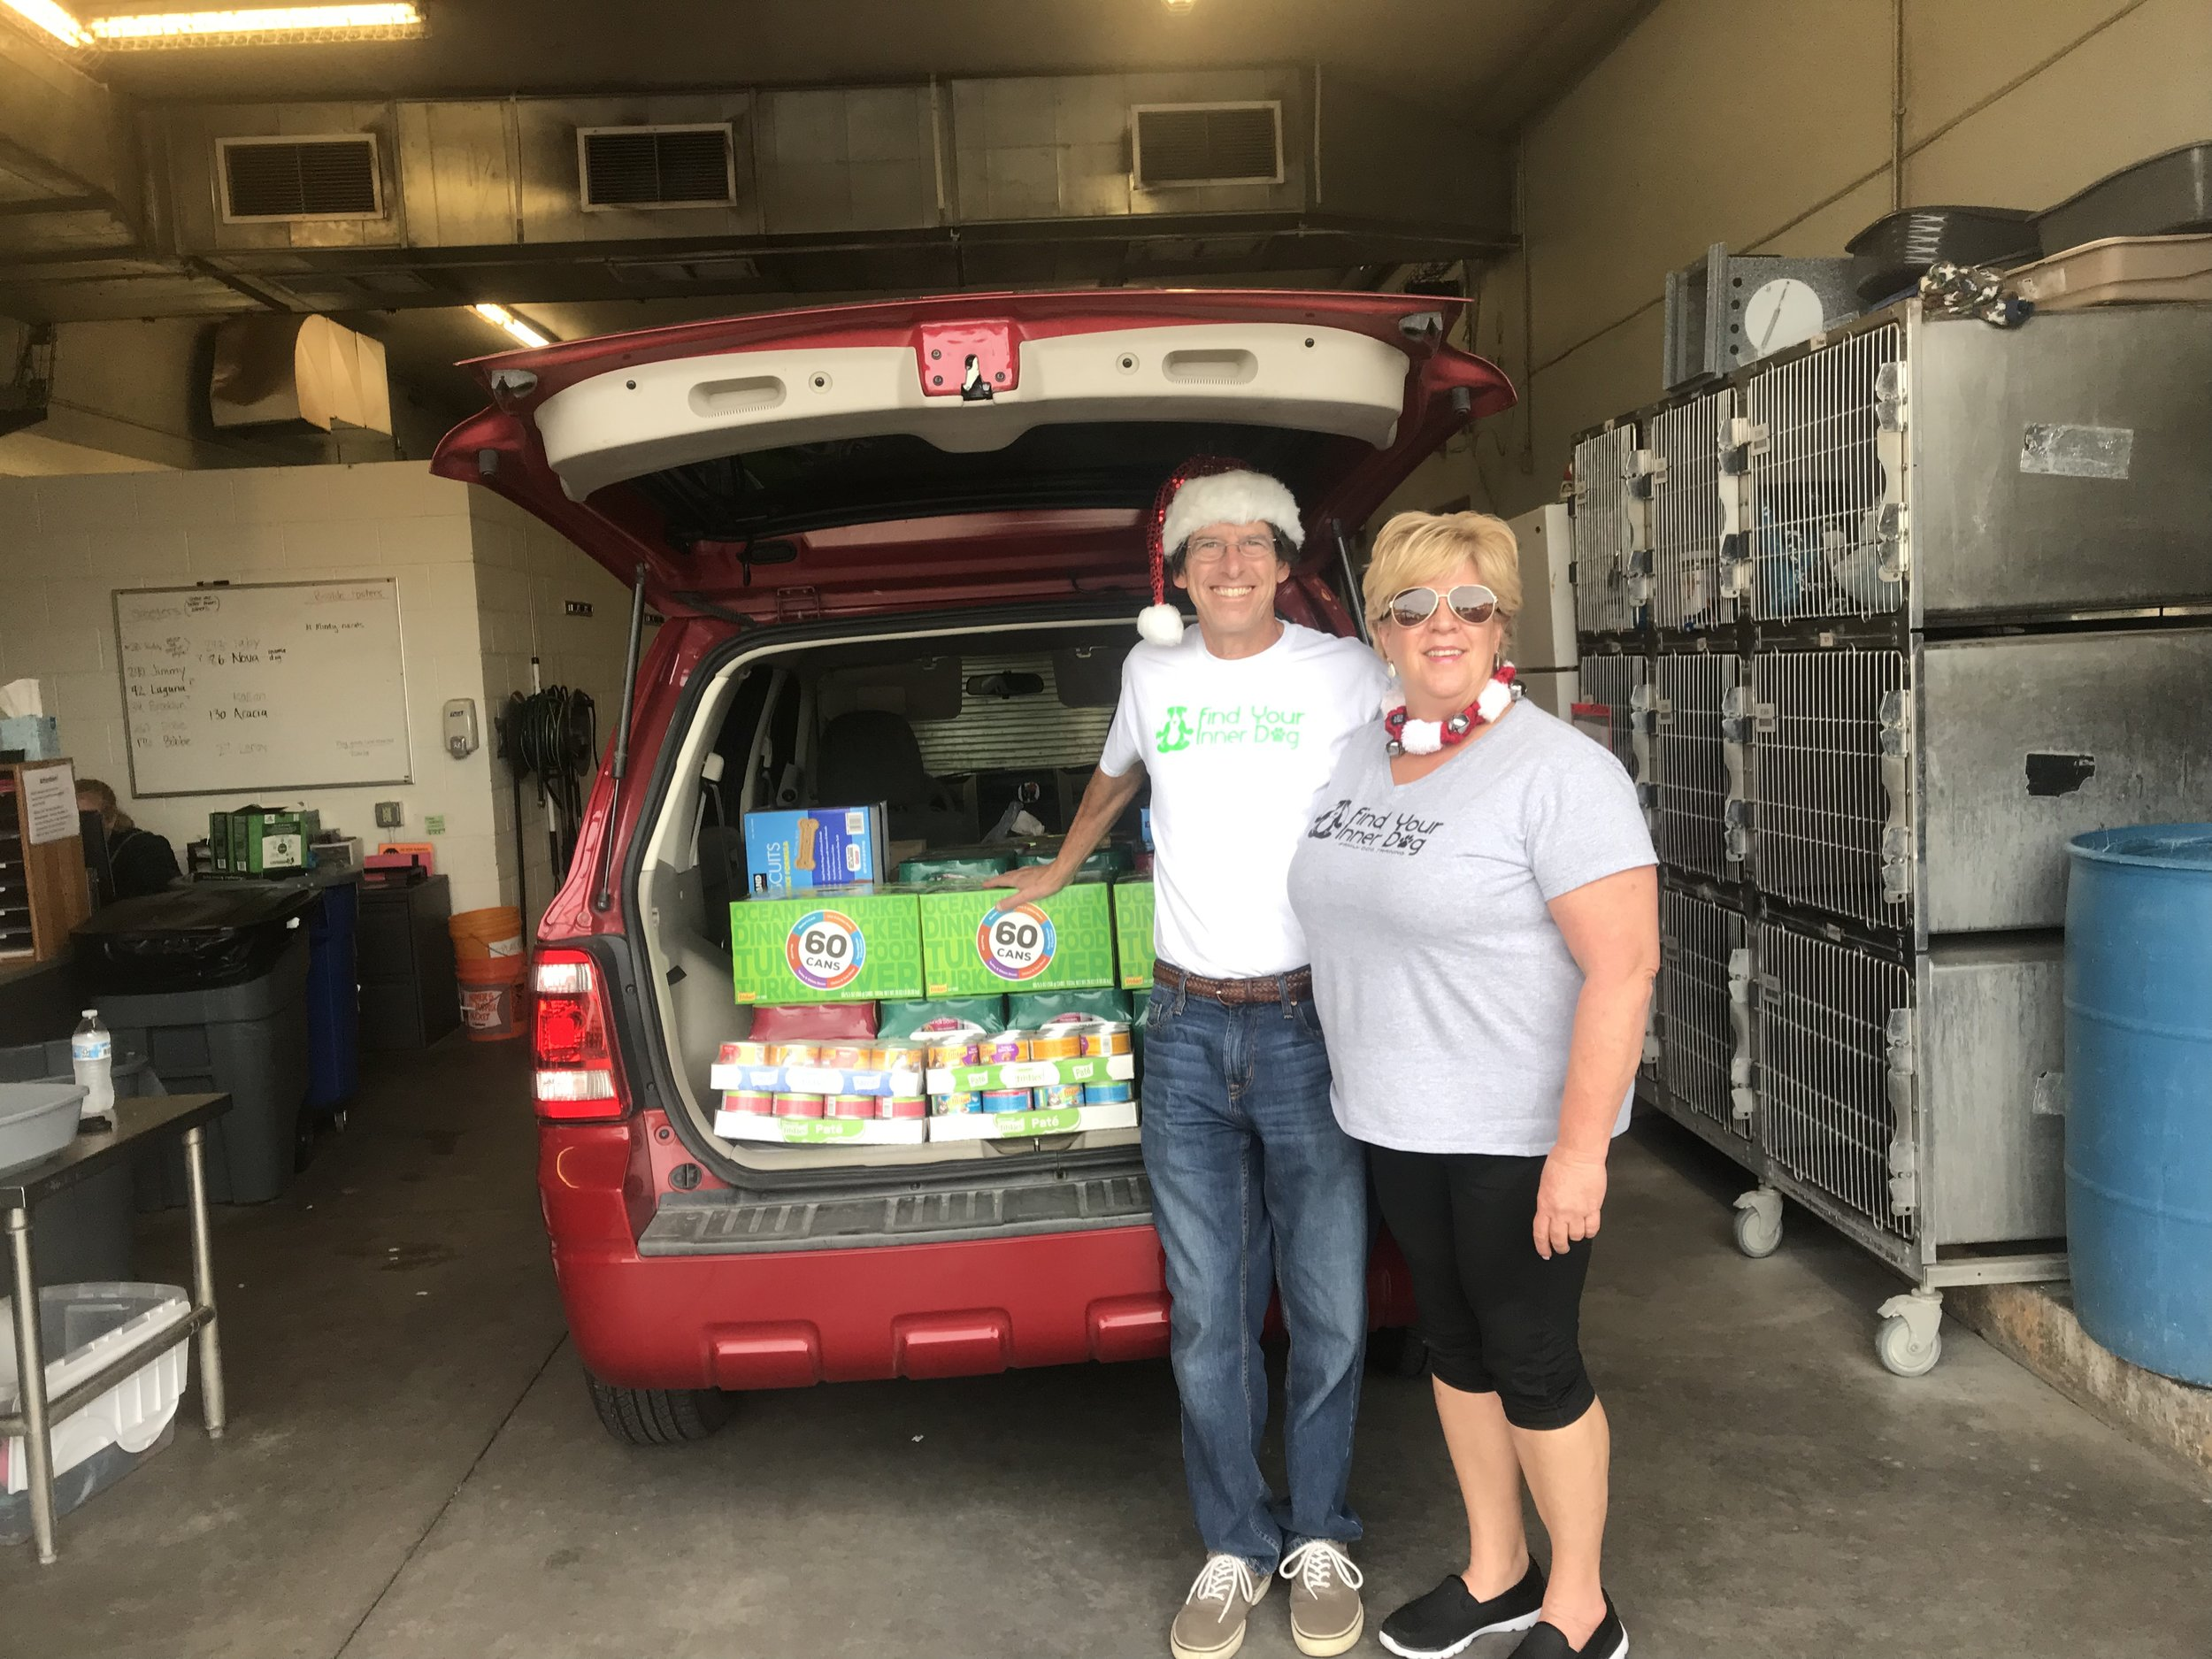 #operationpetunia for 2018 has been a huge success! Thanks to our community pulling together, we donated over 700 cans and 30 pounds of dog biscuits to Maricopa County Animal Care and Control – East shelter.